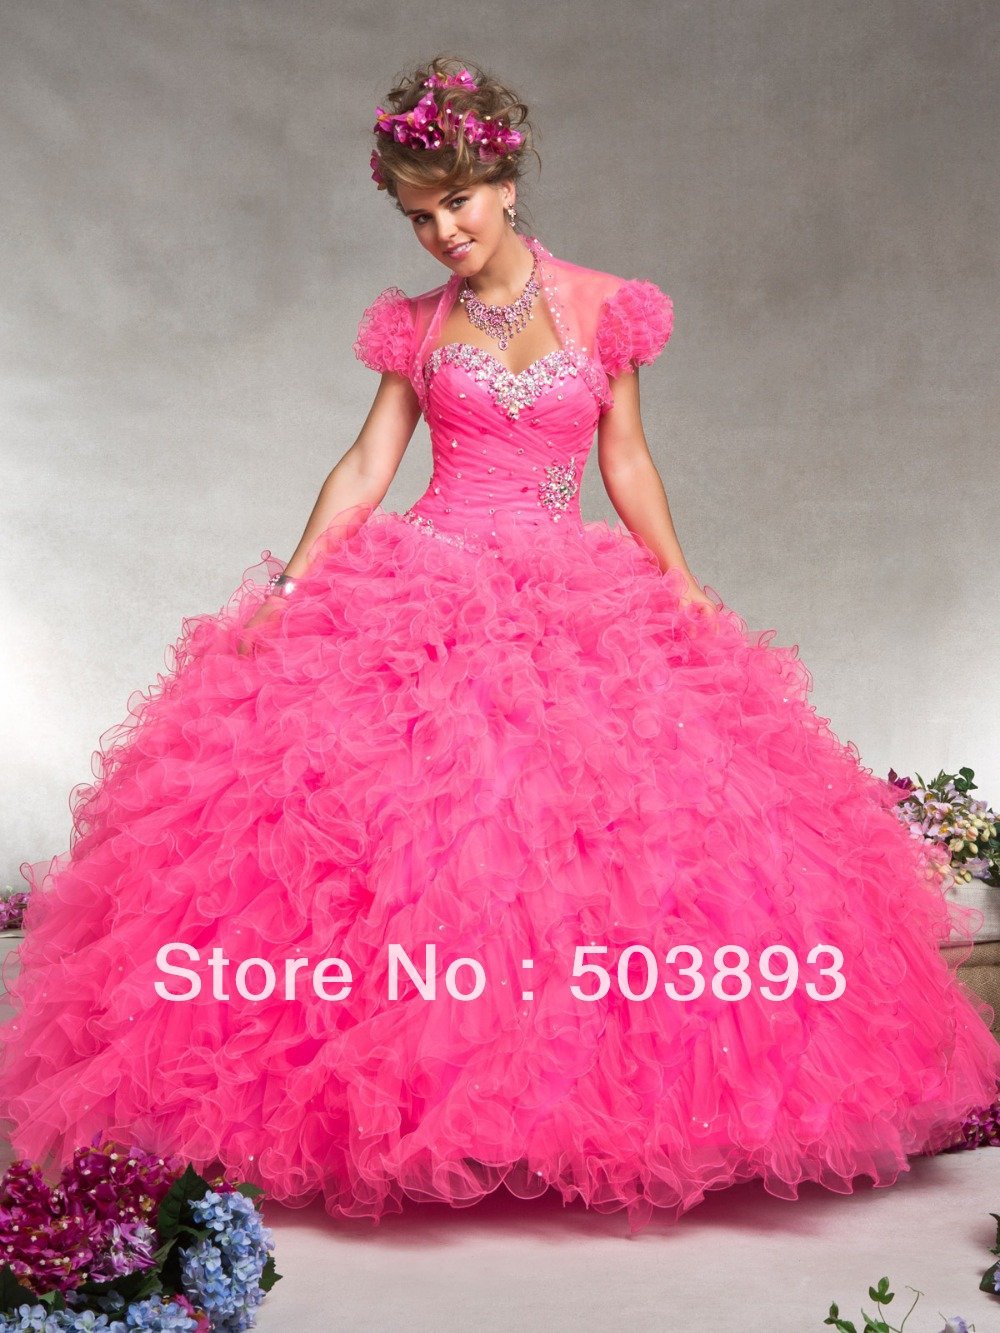 554b22cf927 Quinceanera Dresses Hot Pink - raveitsafe